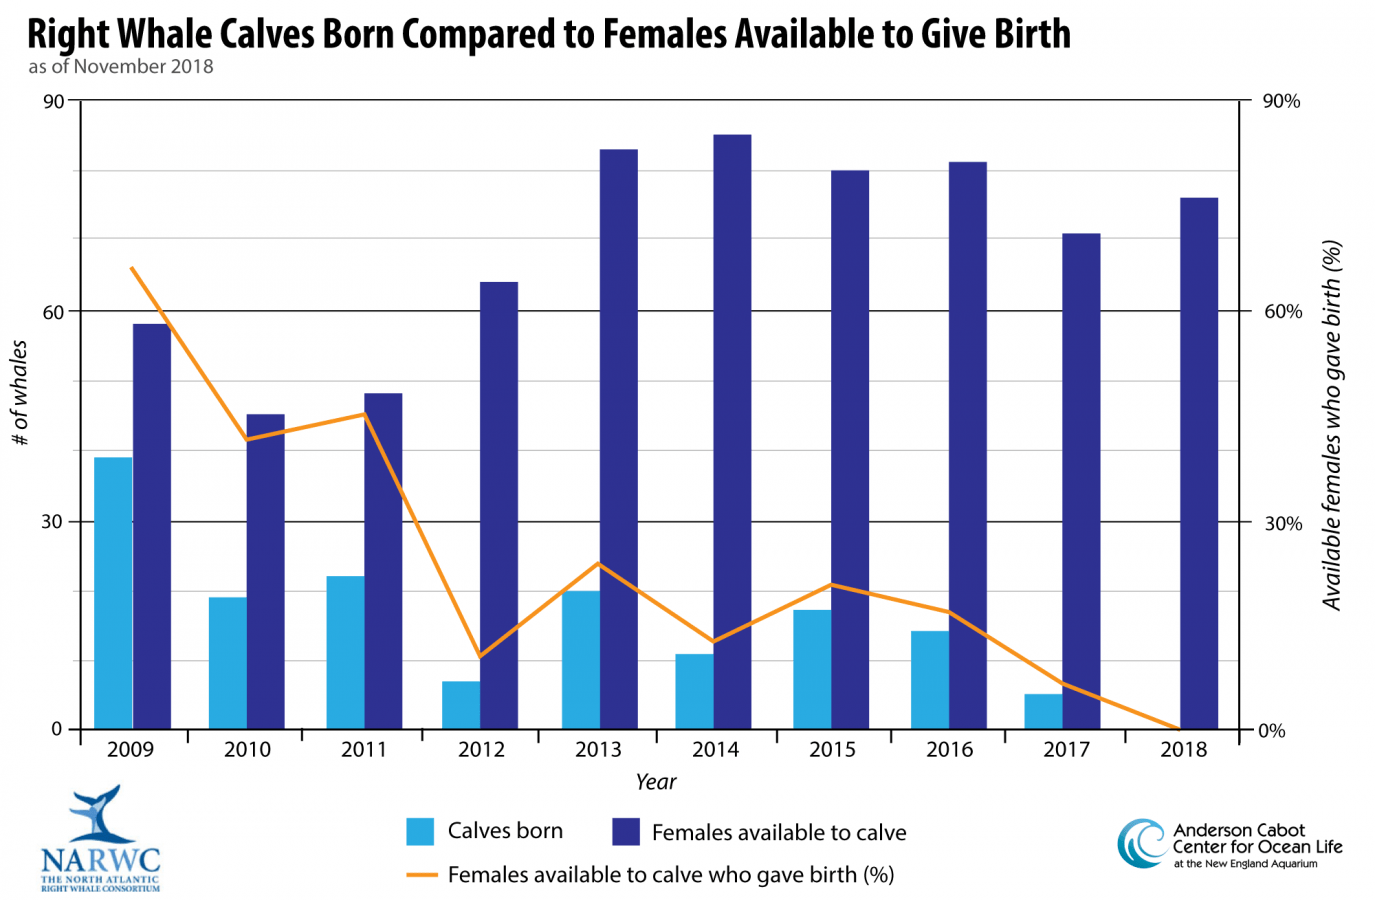 hight resolution of right whale calves born vs females available to give birth